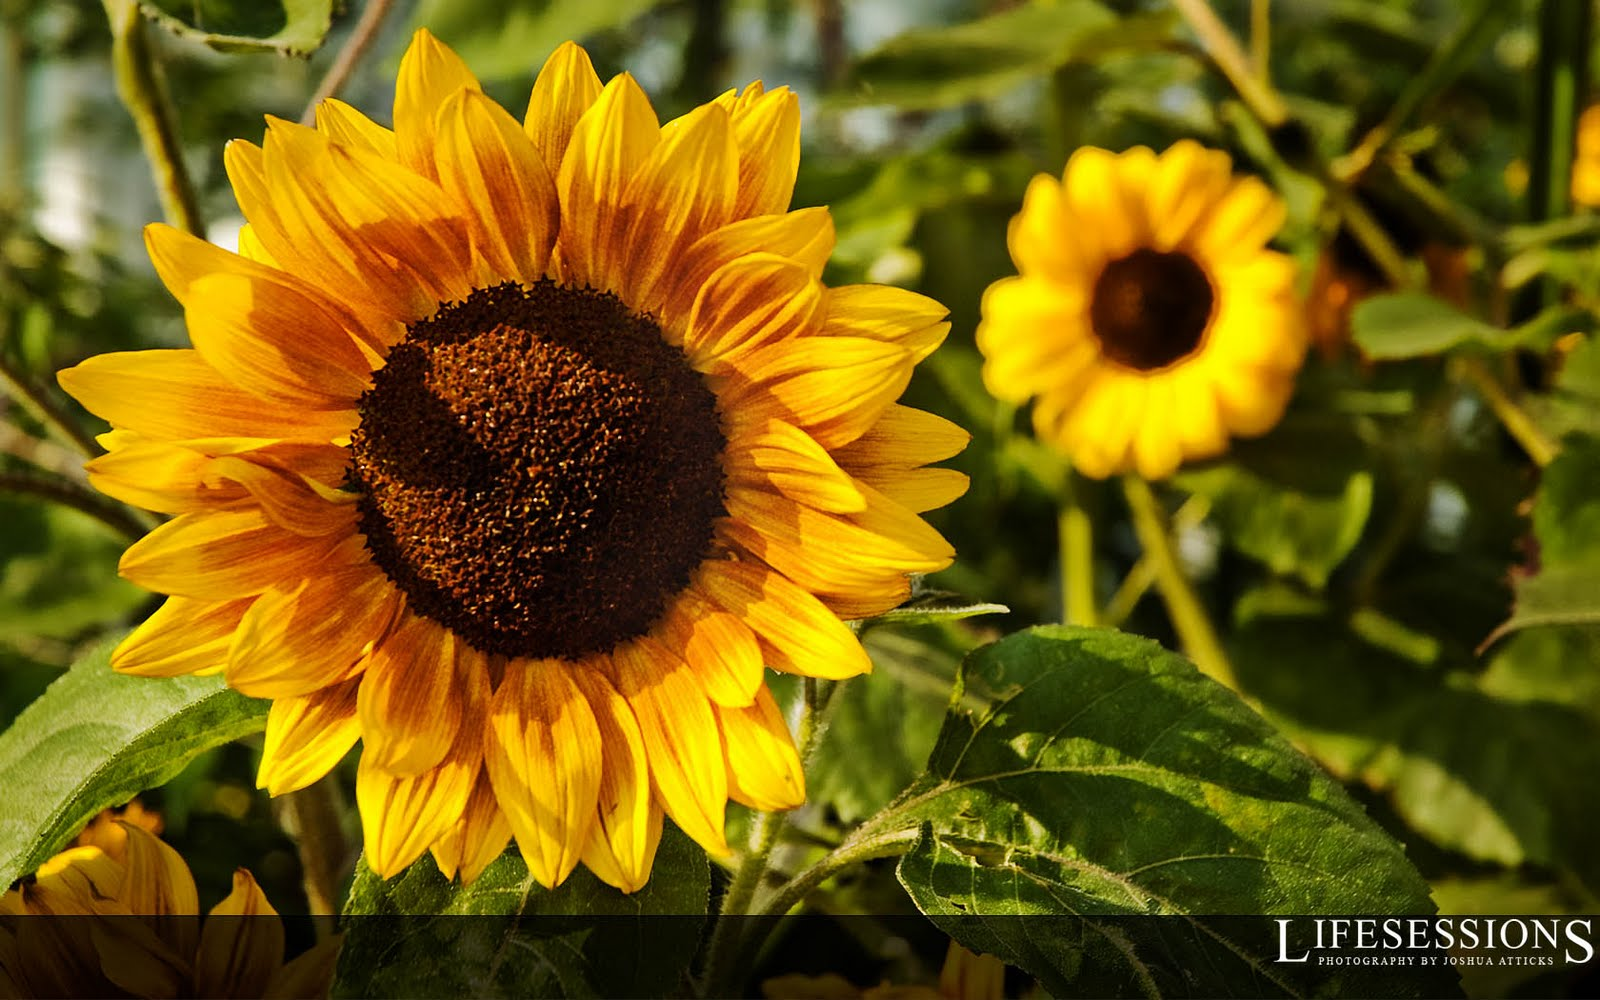 Sunflower Wallpaper With Quotes Quotesgram